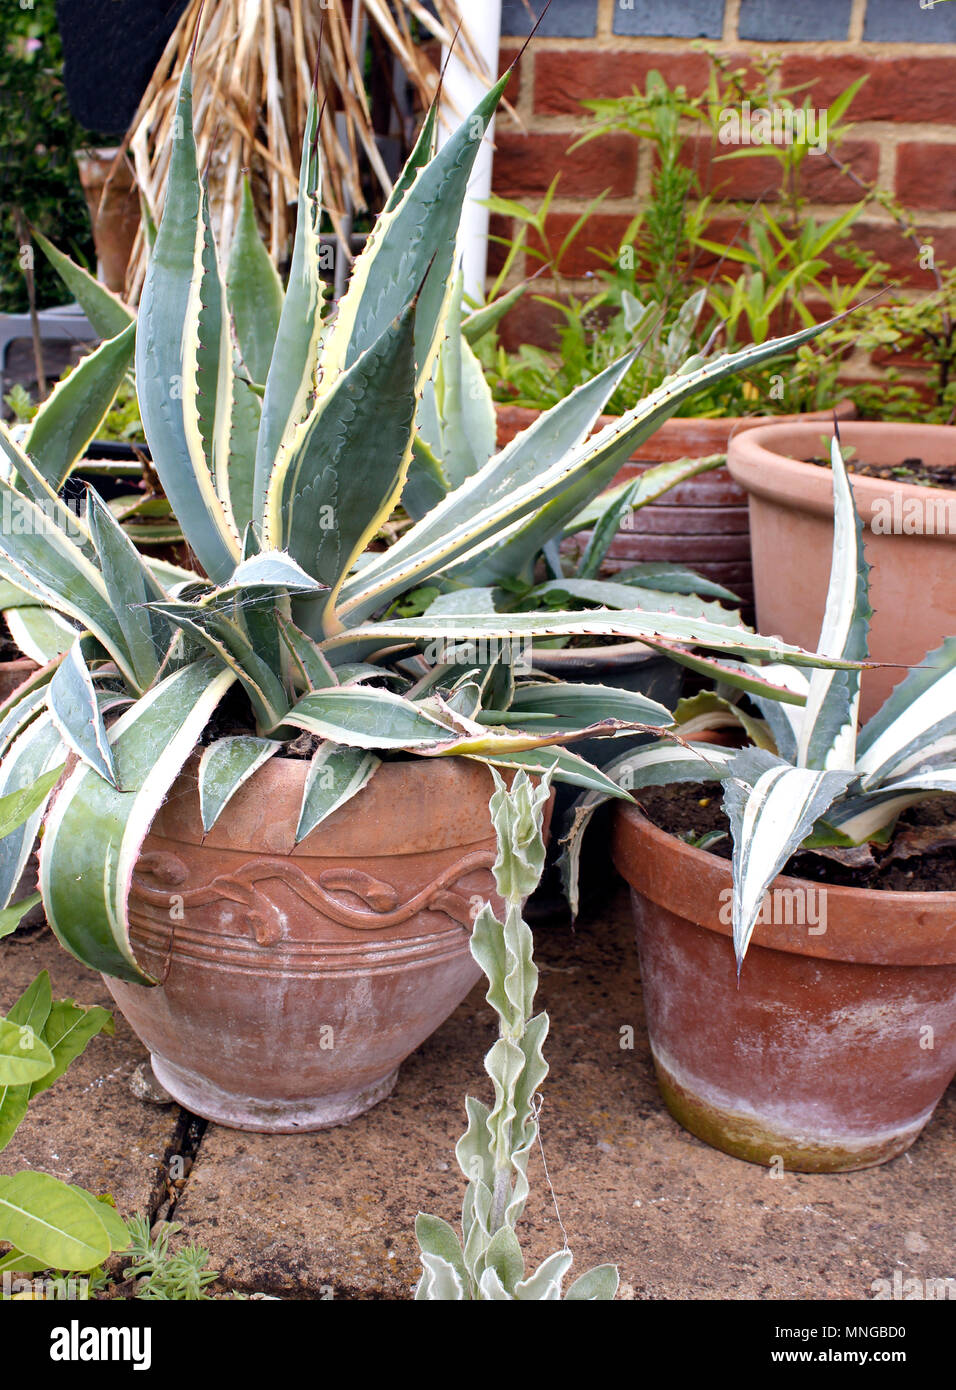 Agave Cactus Agavaceae Growing In Pots Stock Photo 185371676